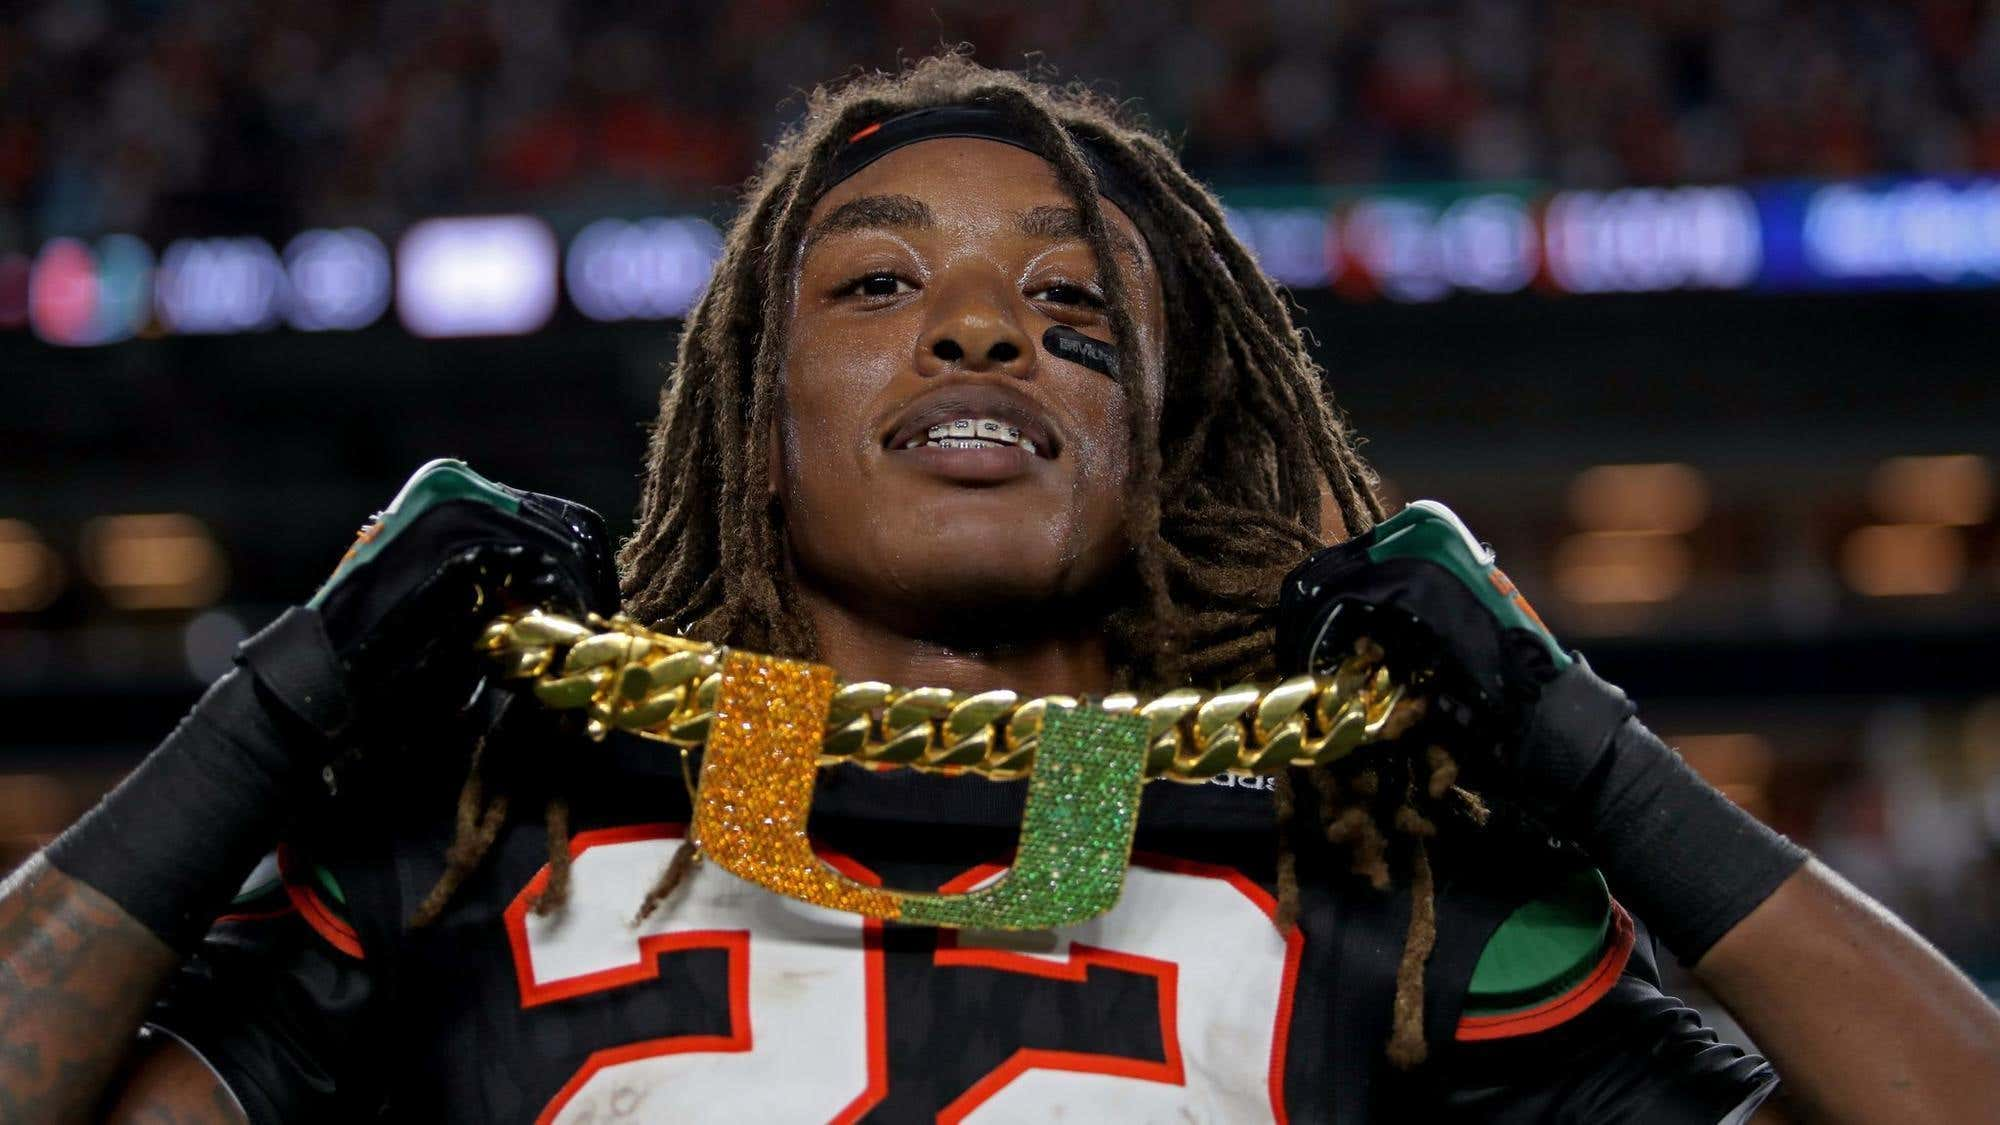 sf-j-wakefield-turnover-chain-miami-canes-beer-20171115